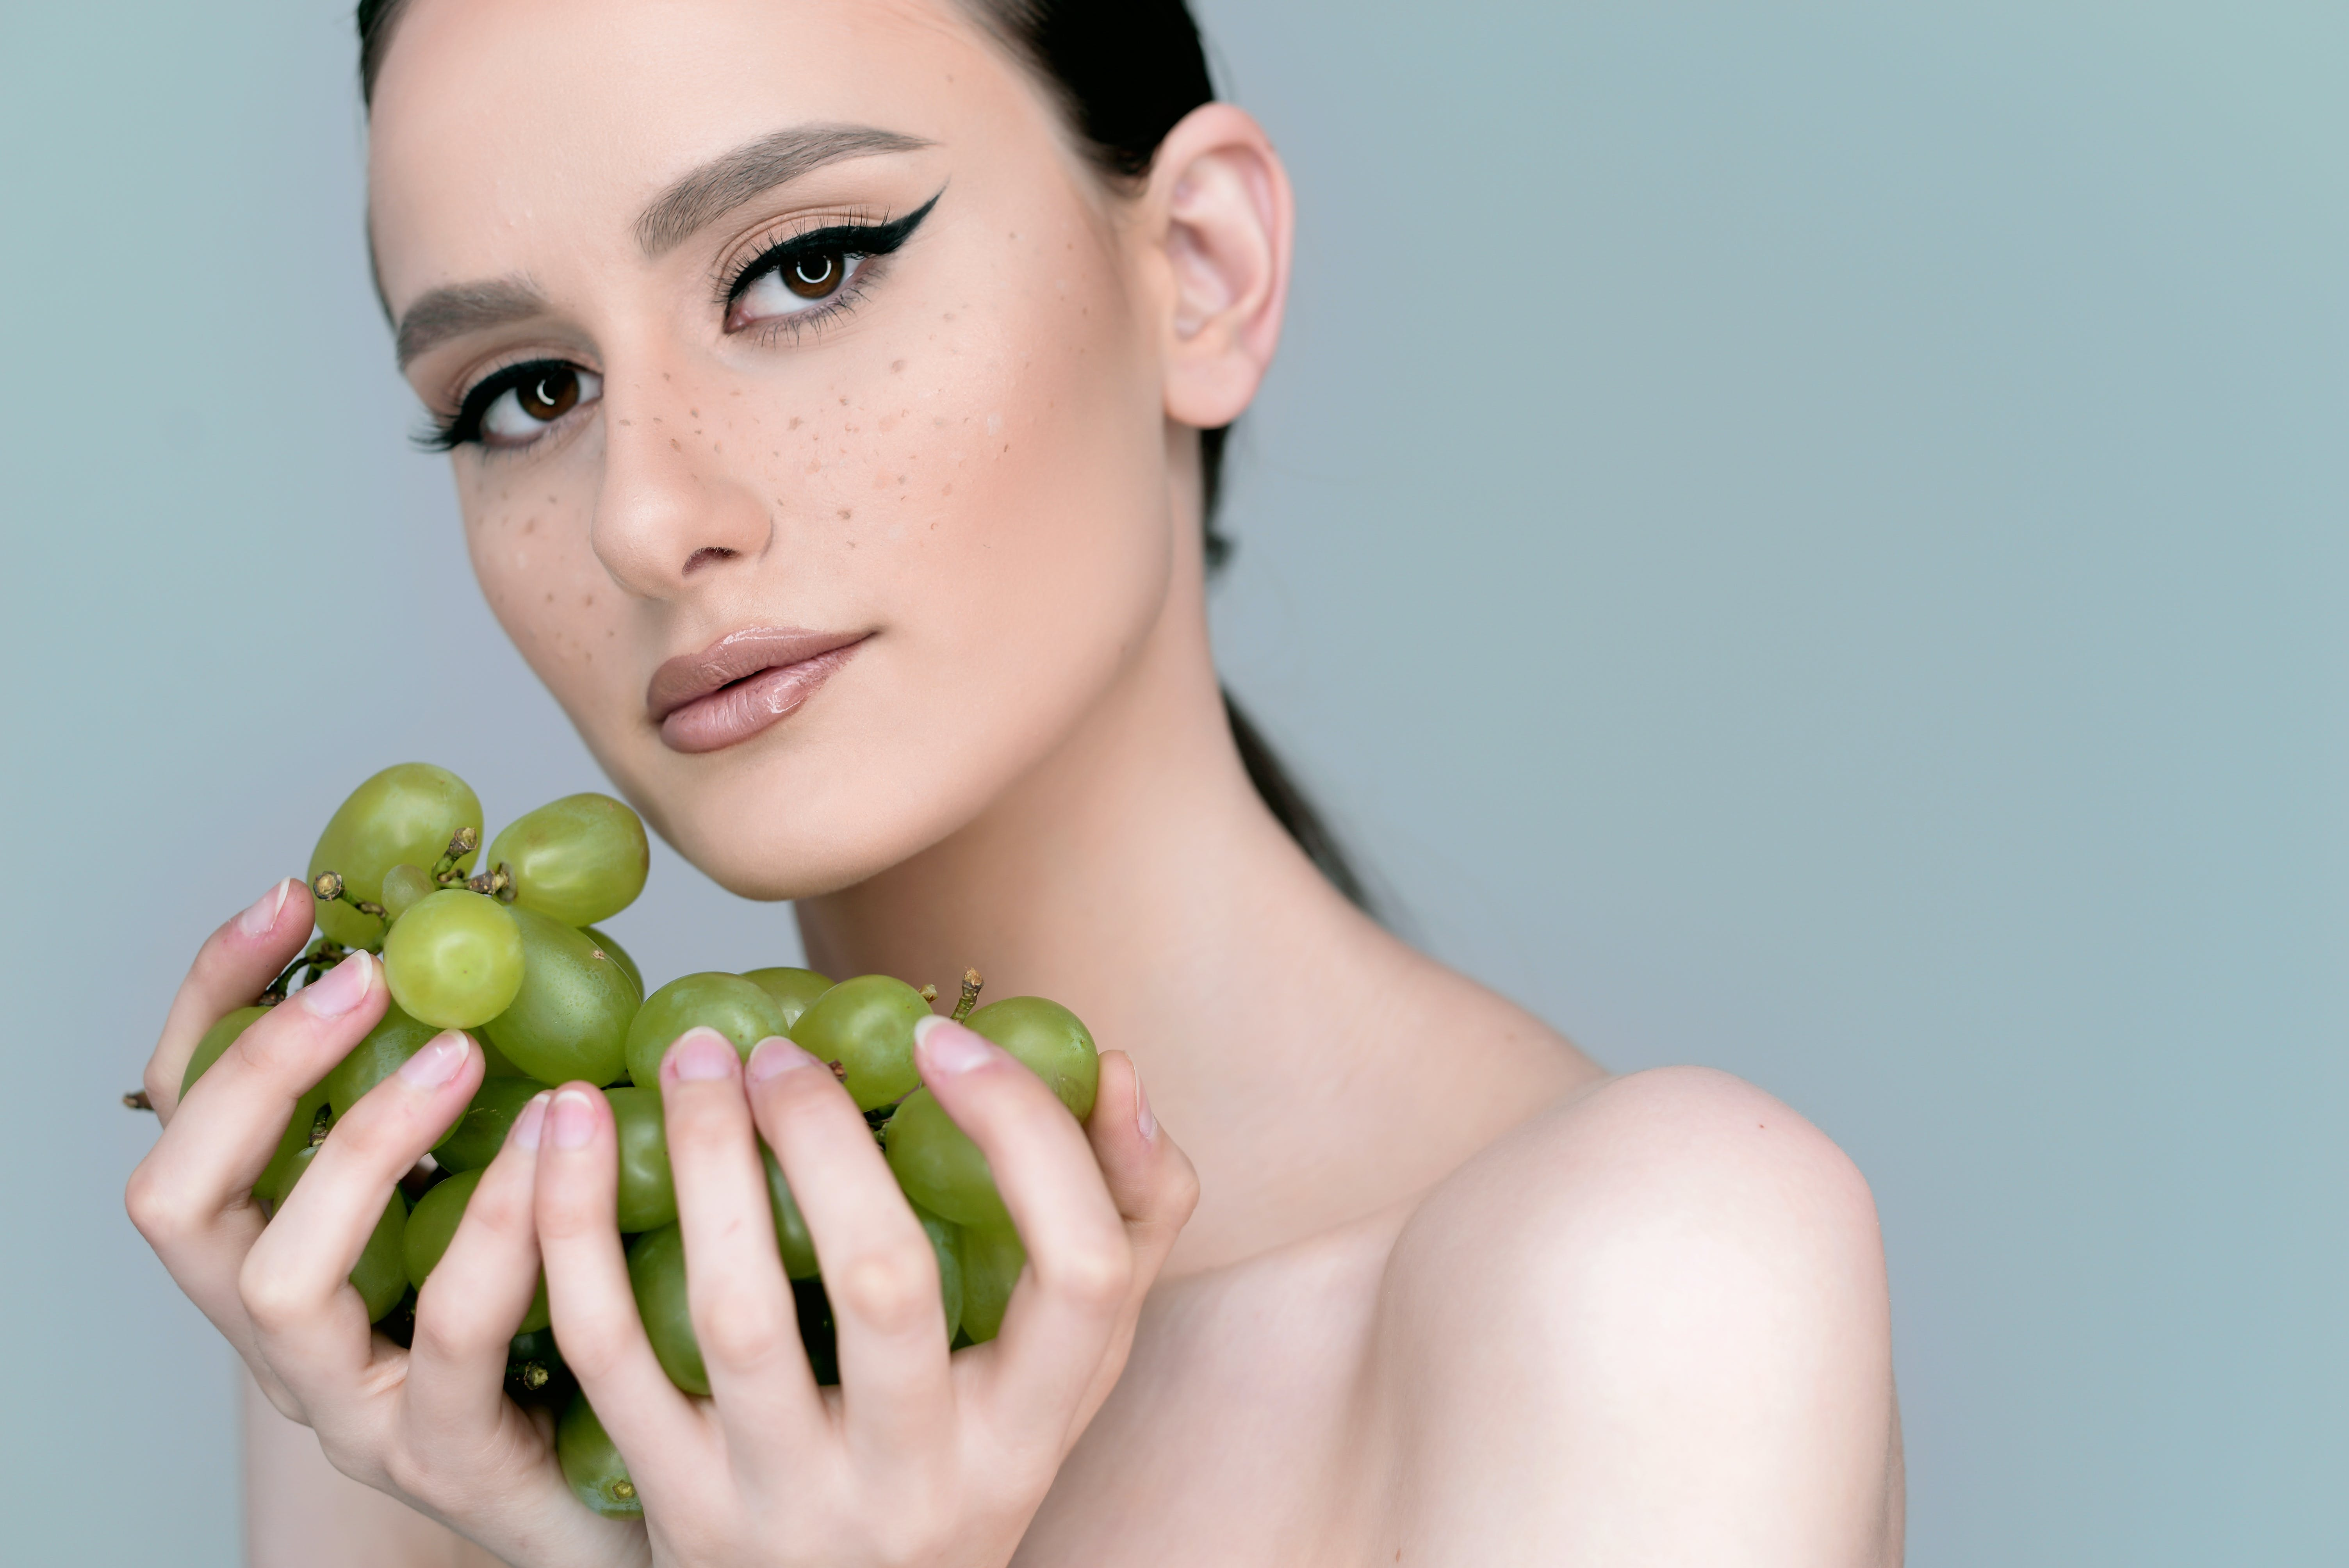 Close-Up Photo of Woman Holding Grapes